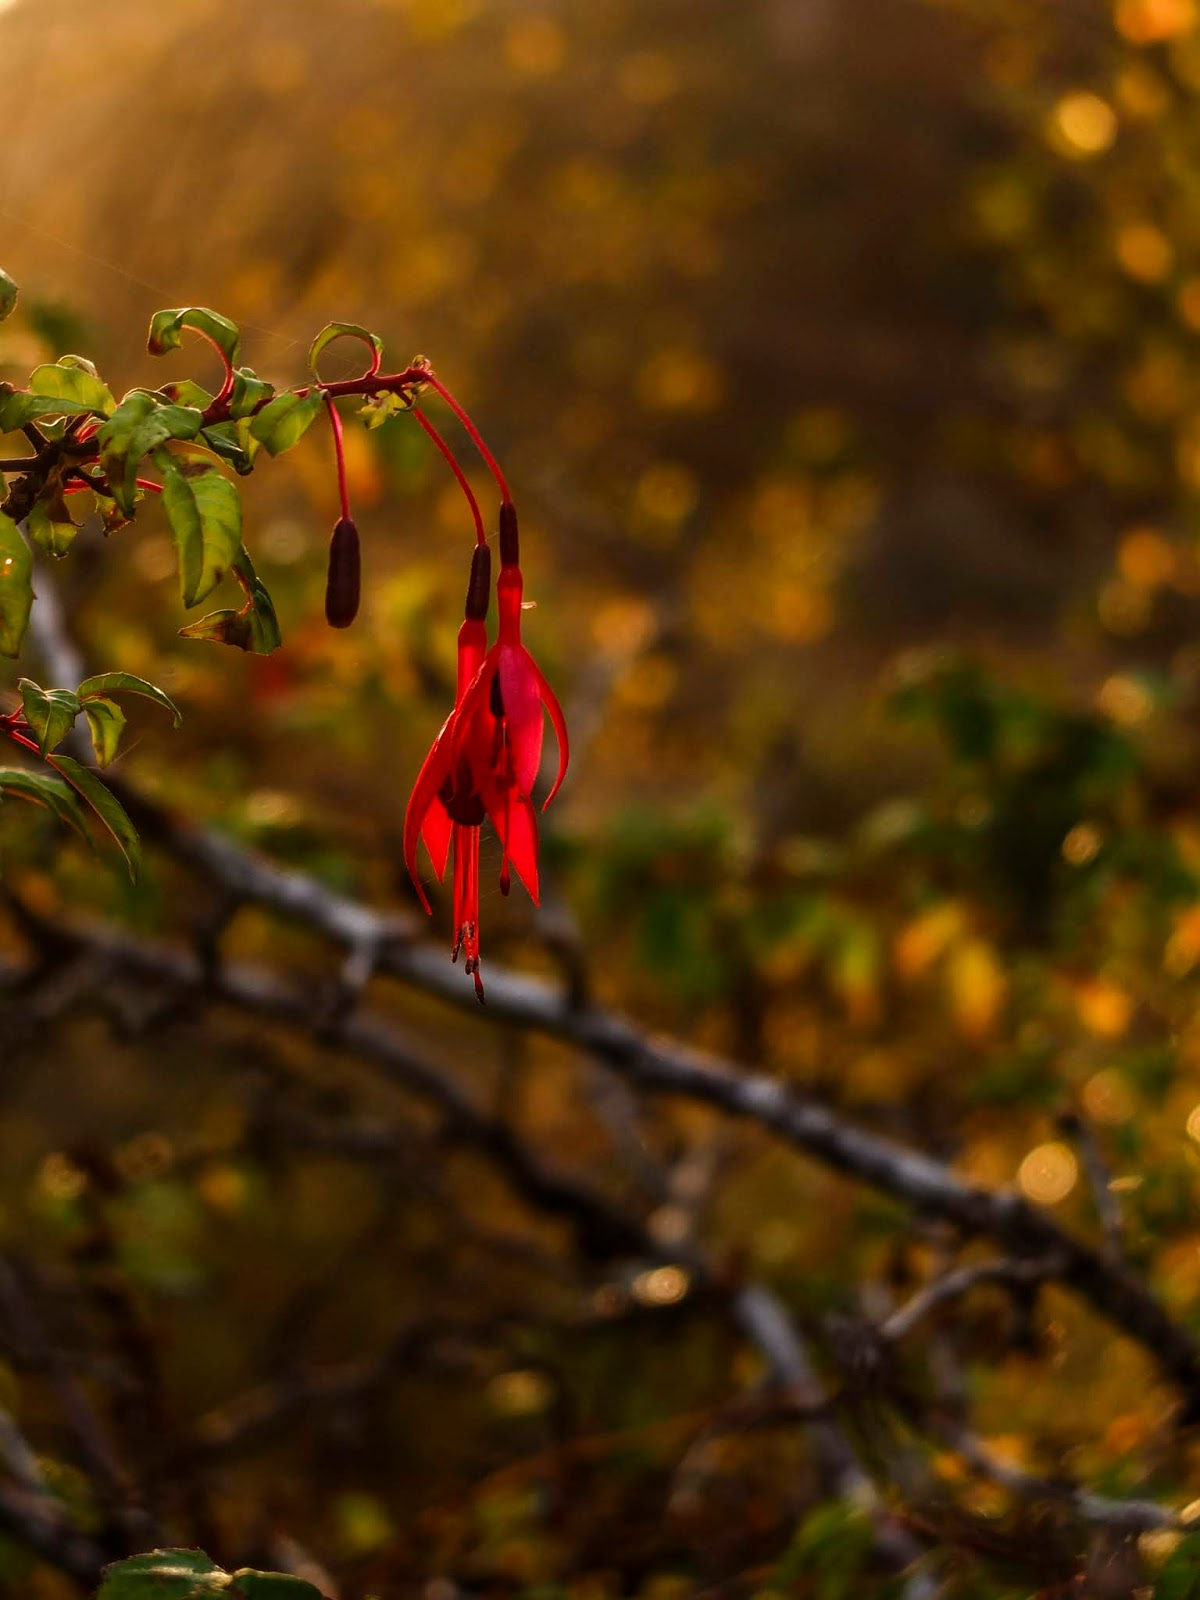 Two Fuchsia flowers hanging off a branch at golden hour sunset.